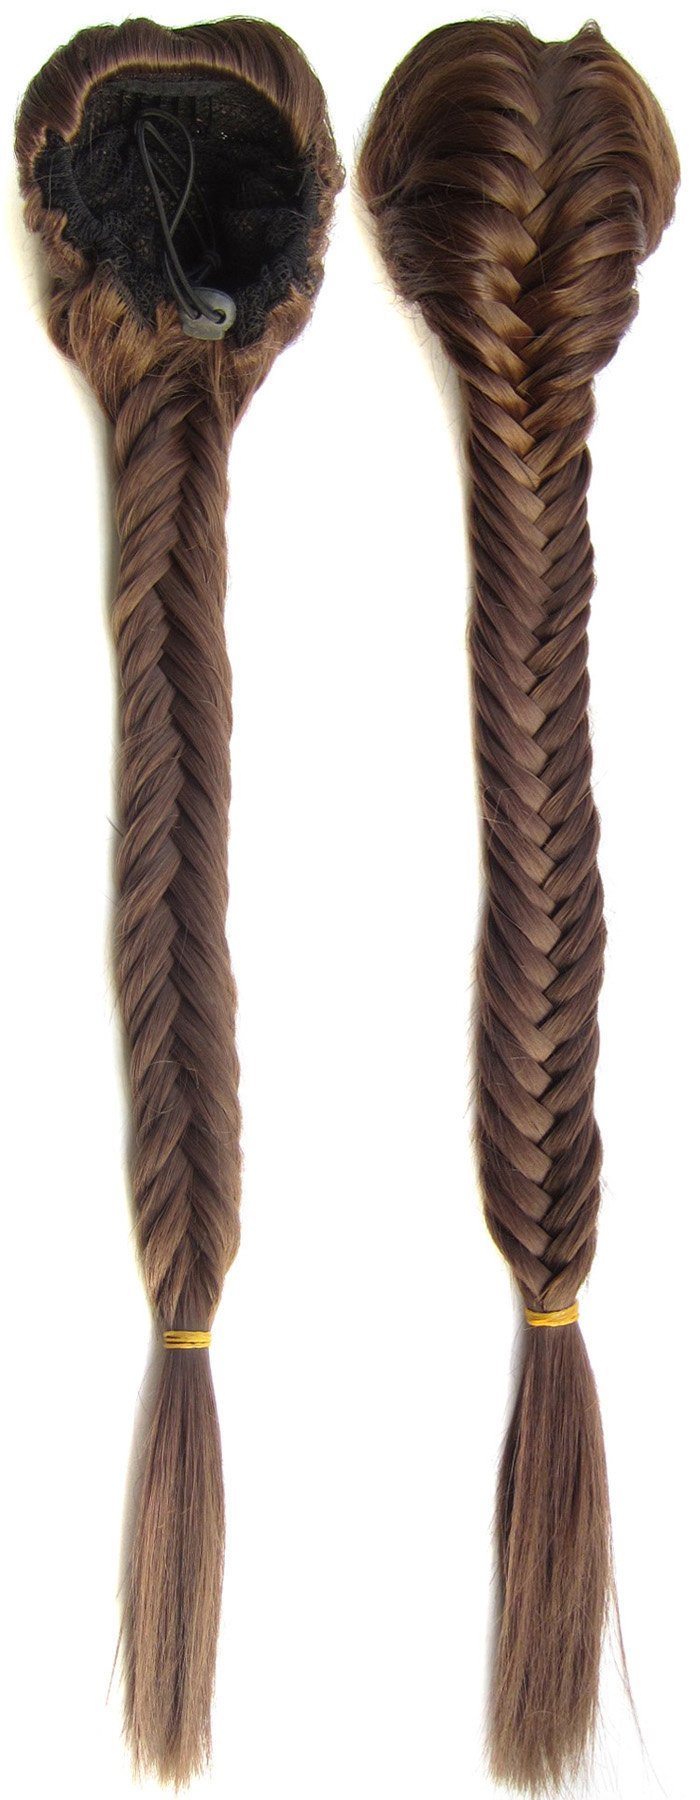 SWACC Long Fishtail Braid Ponytail Extension Synthetic Clip in Drawstring Ponytail Hairpiece (Medium Ash Brown-8#)